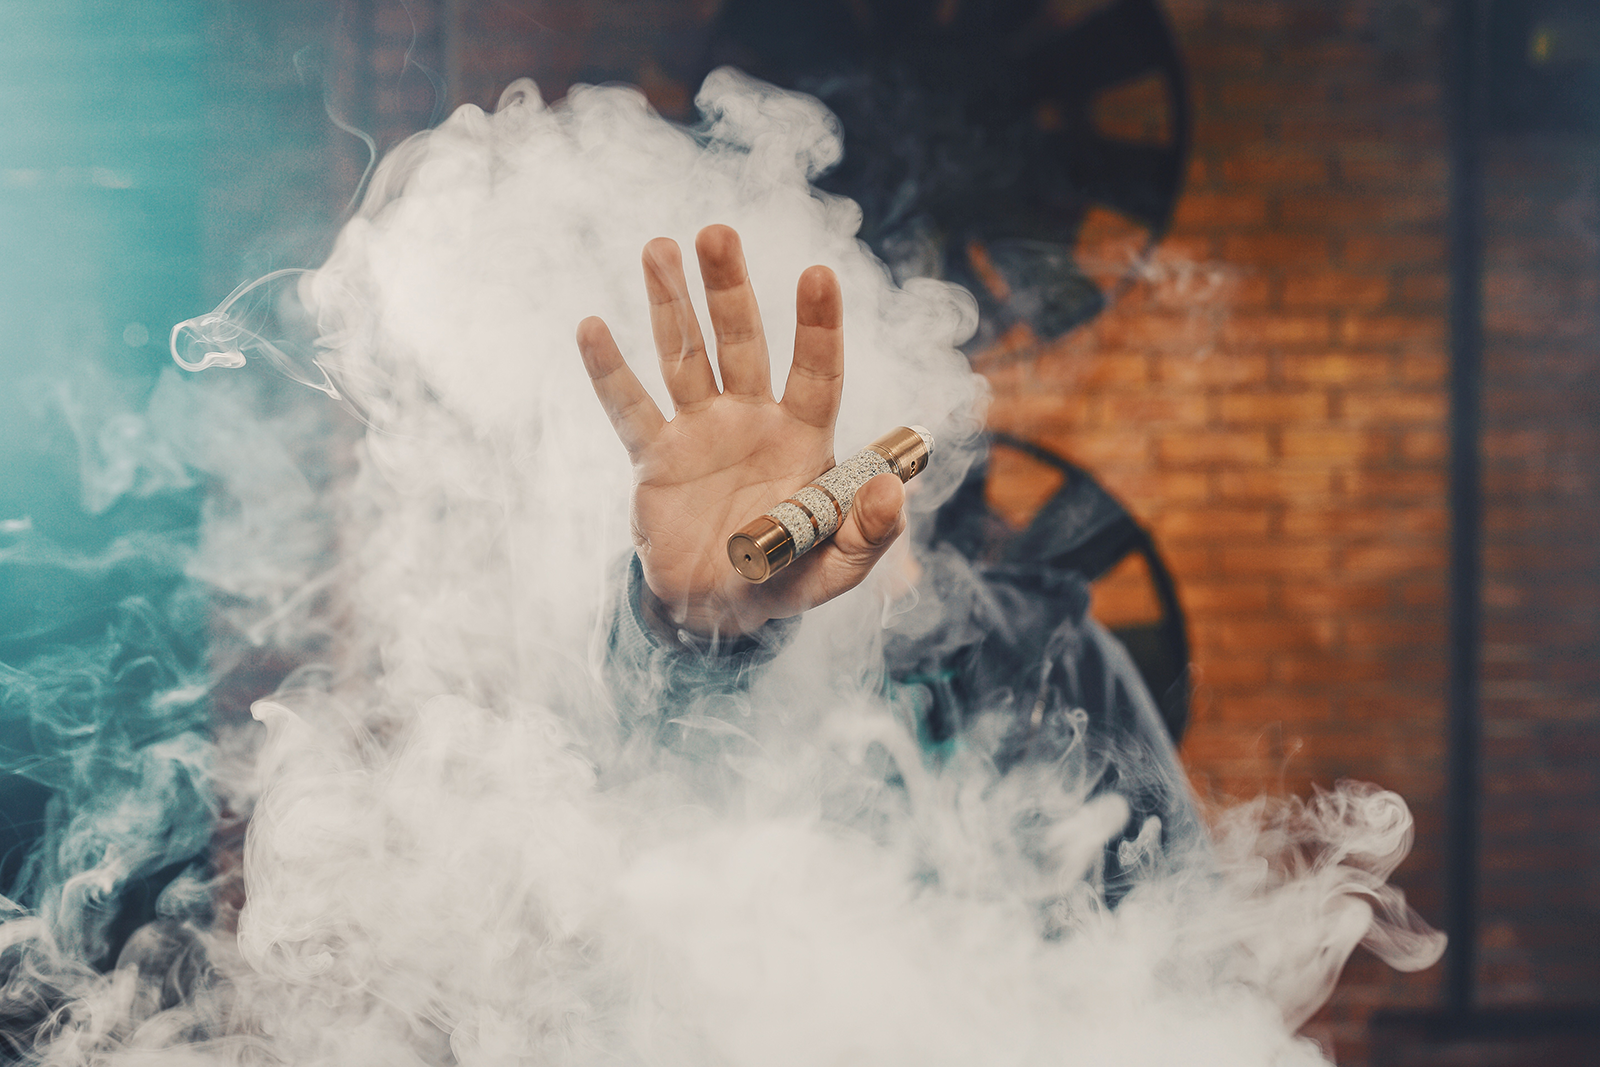 WHY VAPE BECAME A TREND.